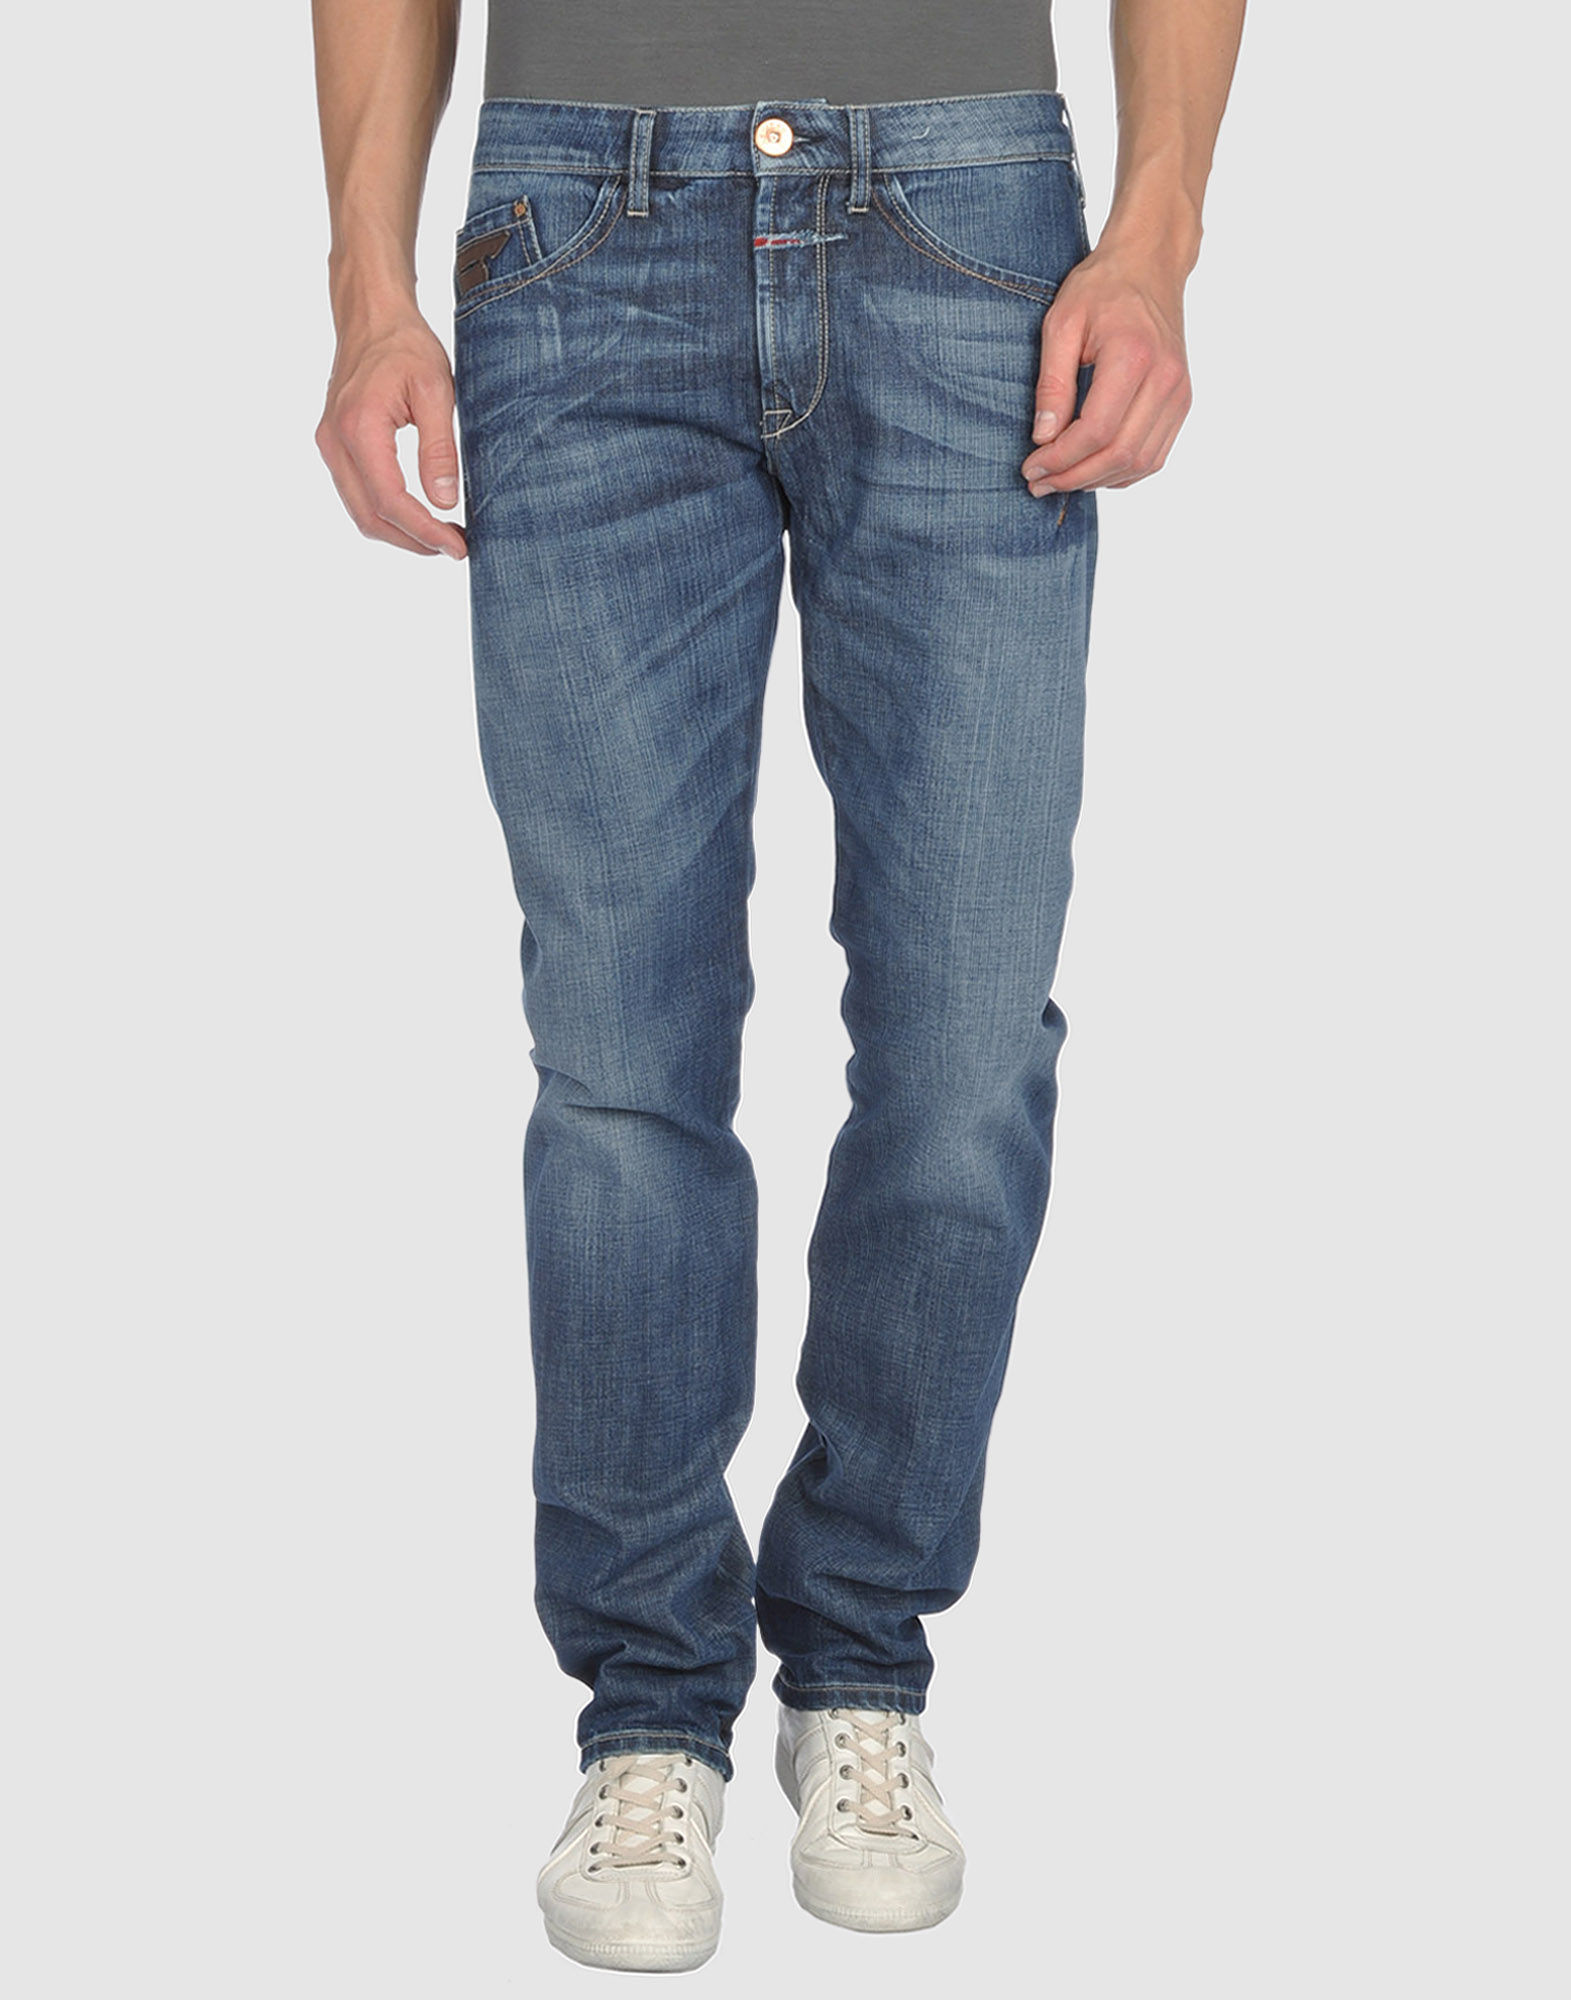 Francois Girbaud Mens Jeans Newhairstylesformen2014 Com